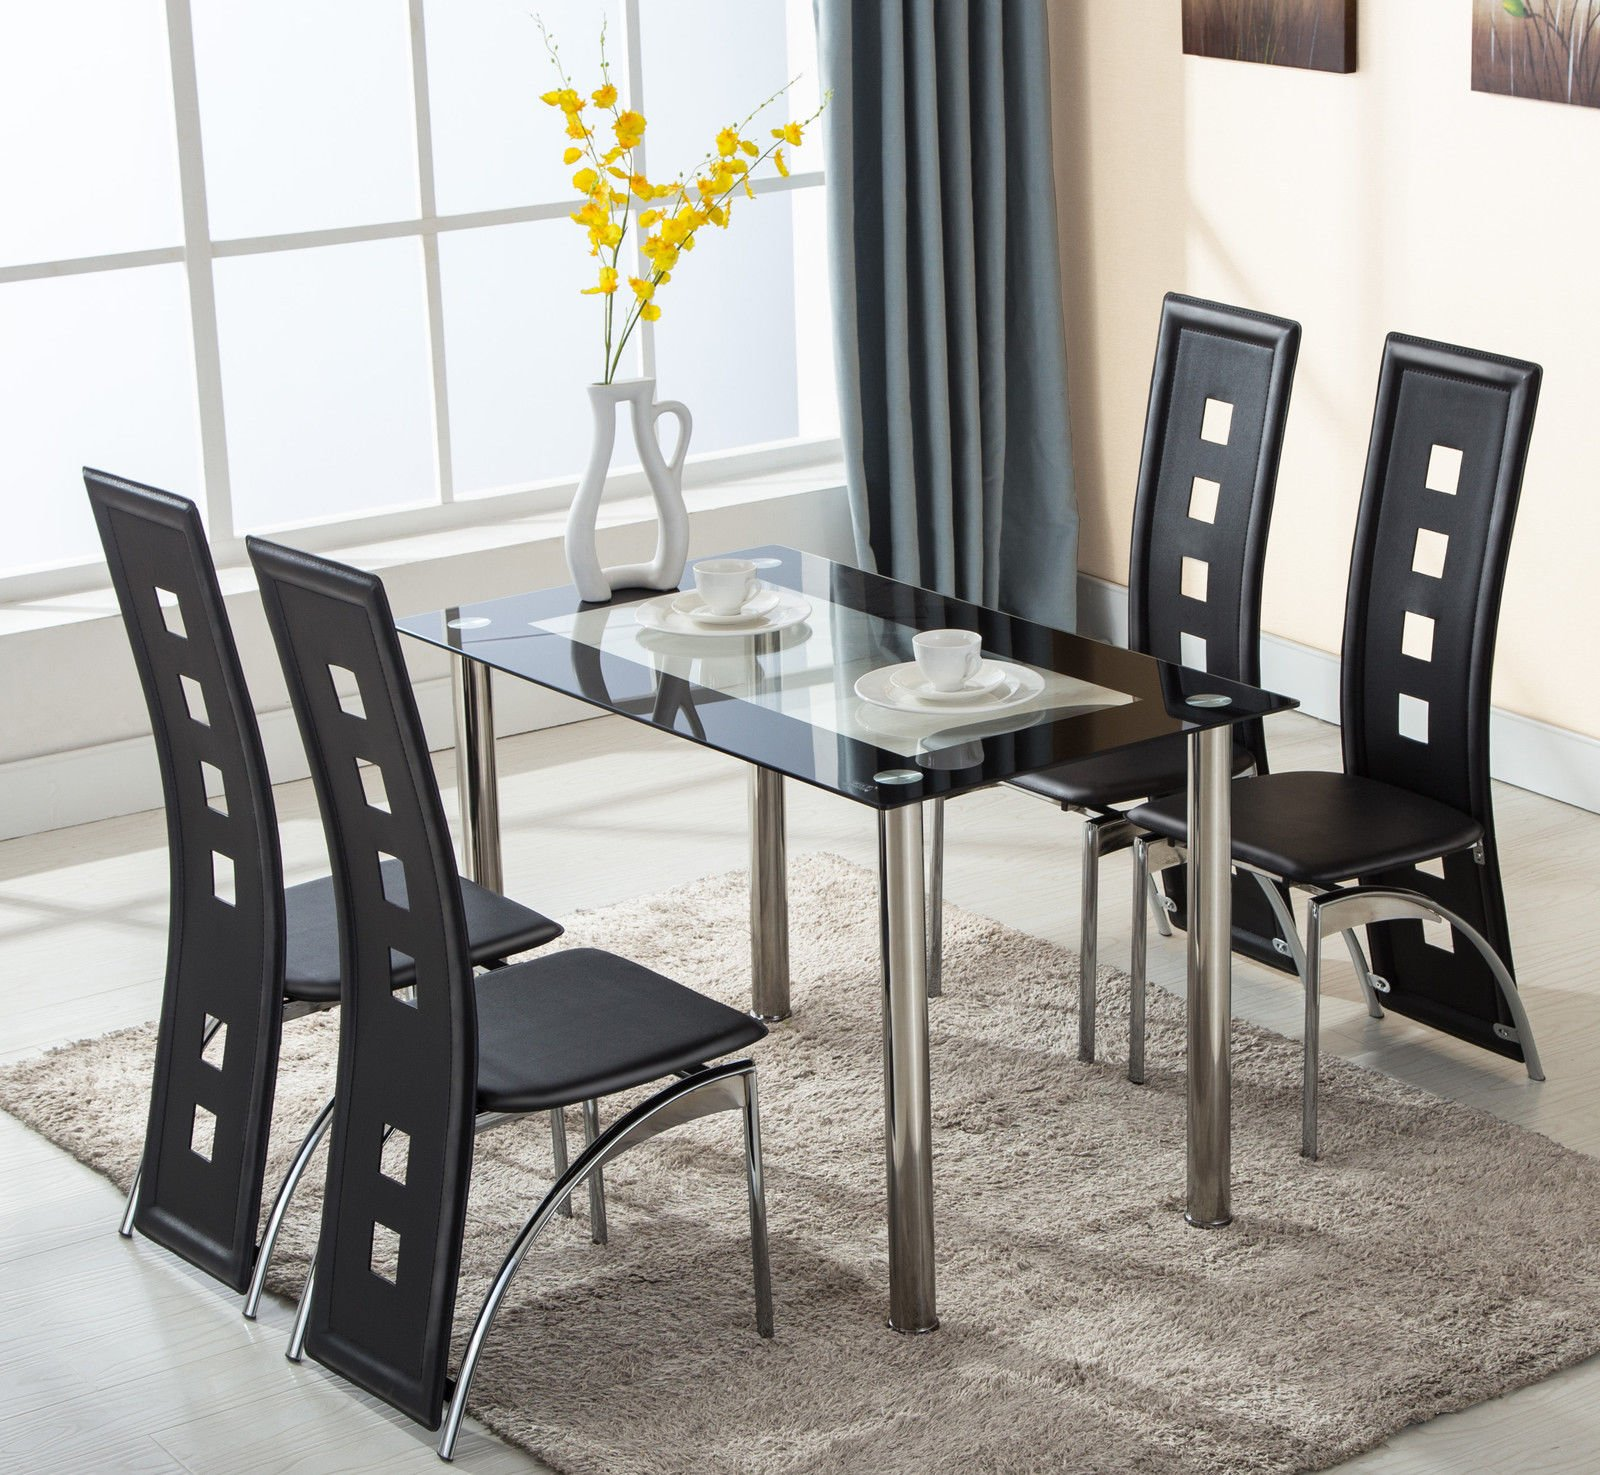 5 Piece Glass Dining Table and 4 Leather Chairs Breakfast Dining Kitchen Furniture New